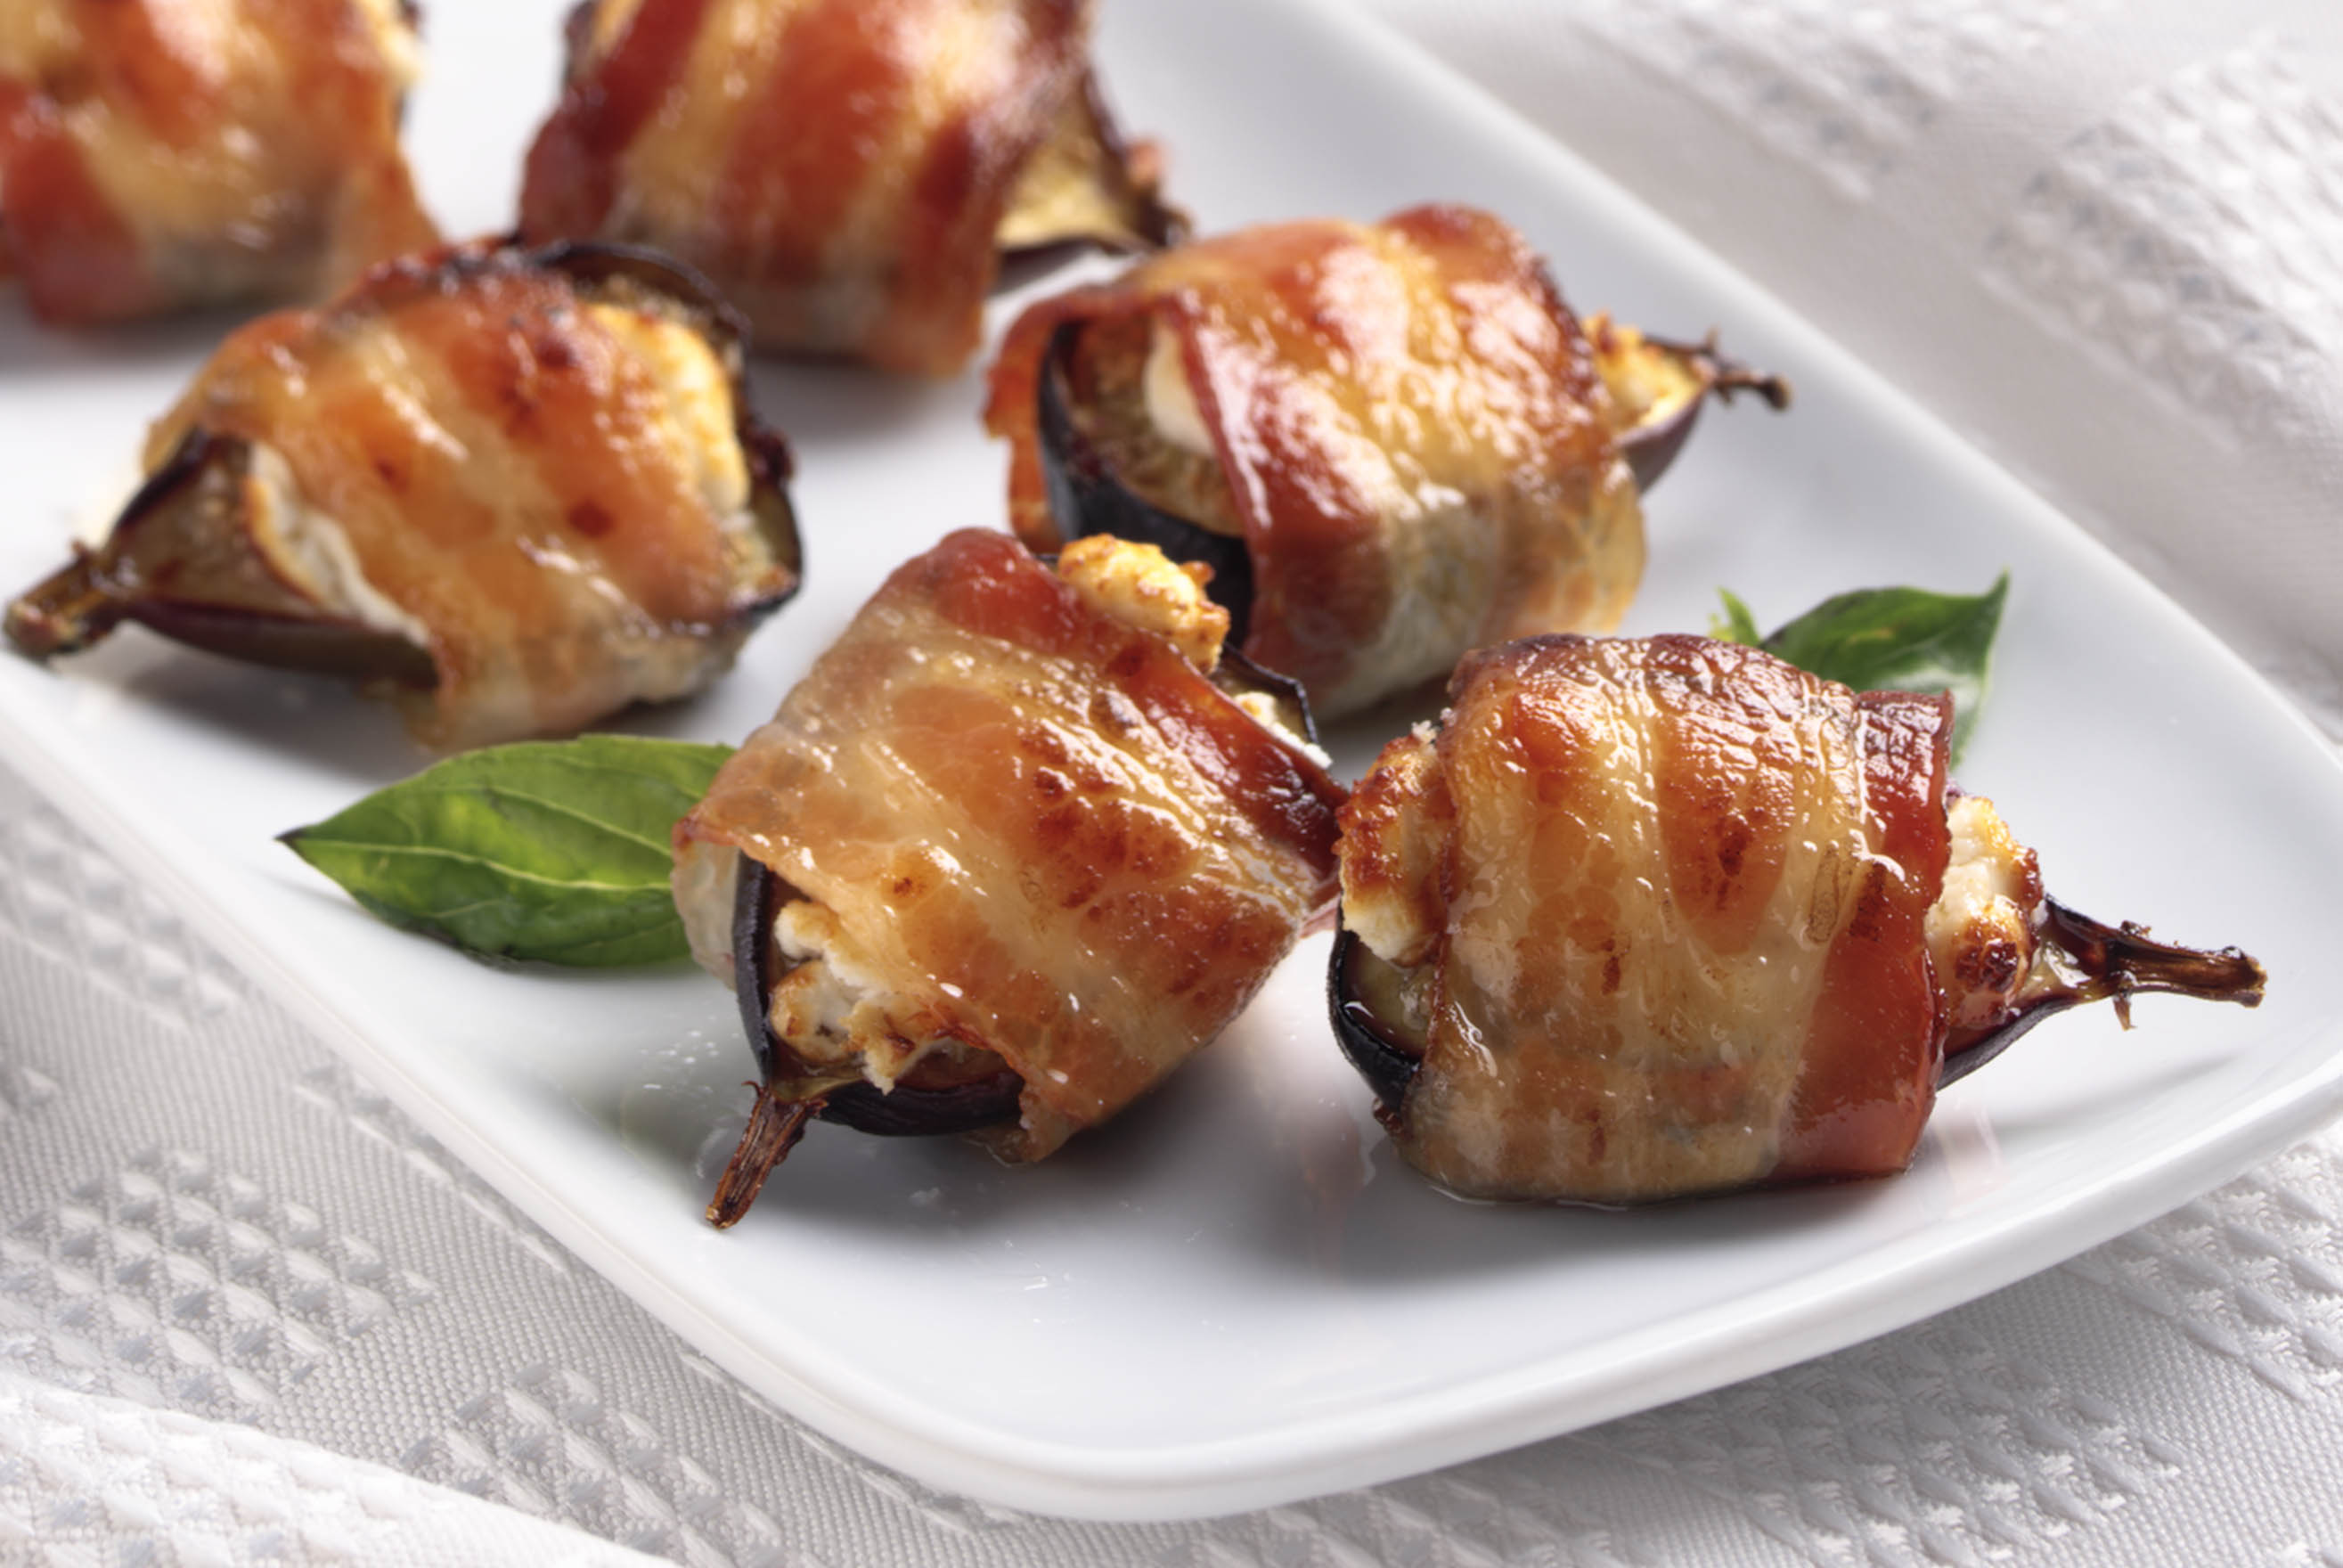 Bacon Wrapped Figs 129360 on oscar mayer select sausage